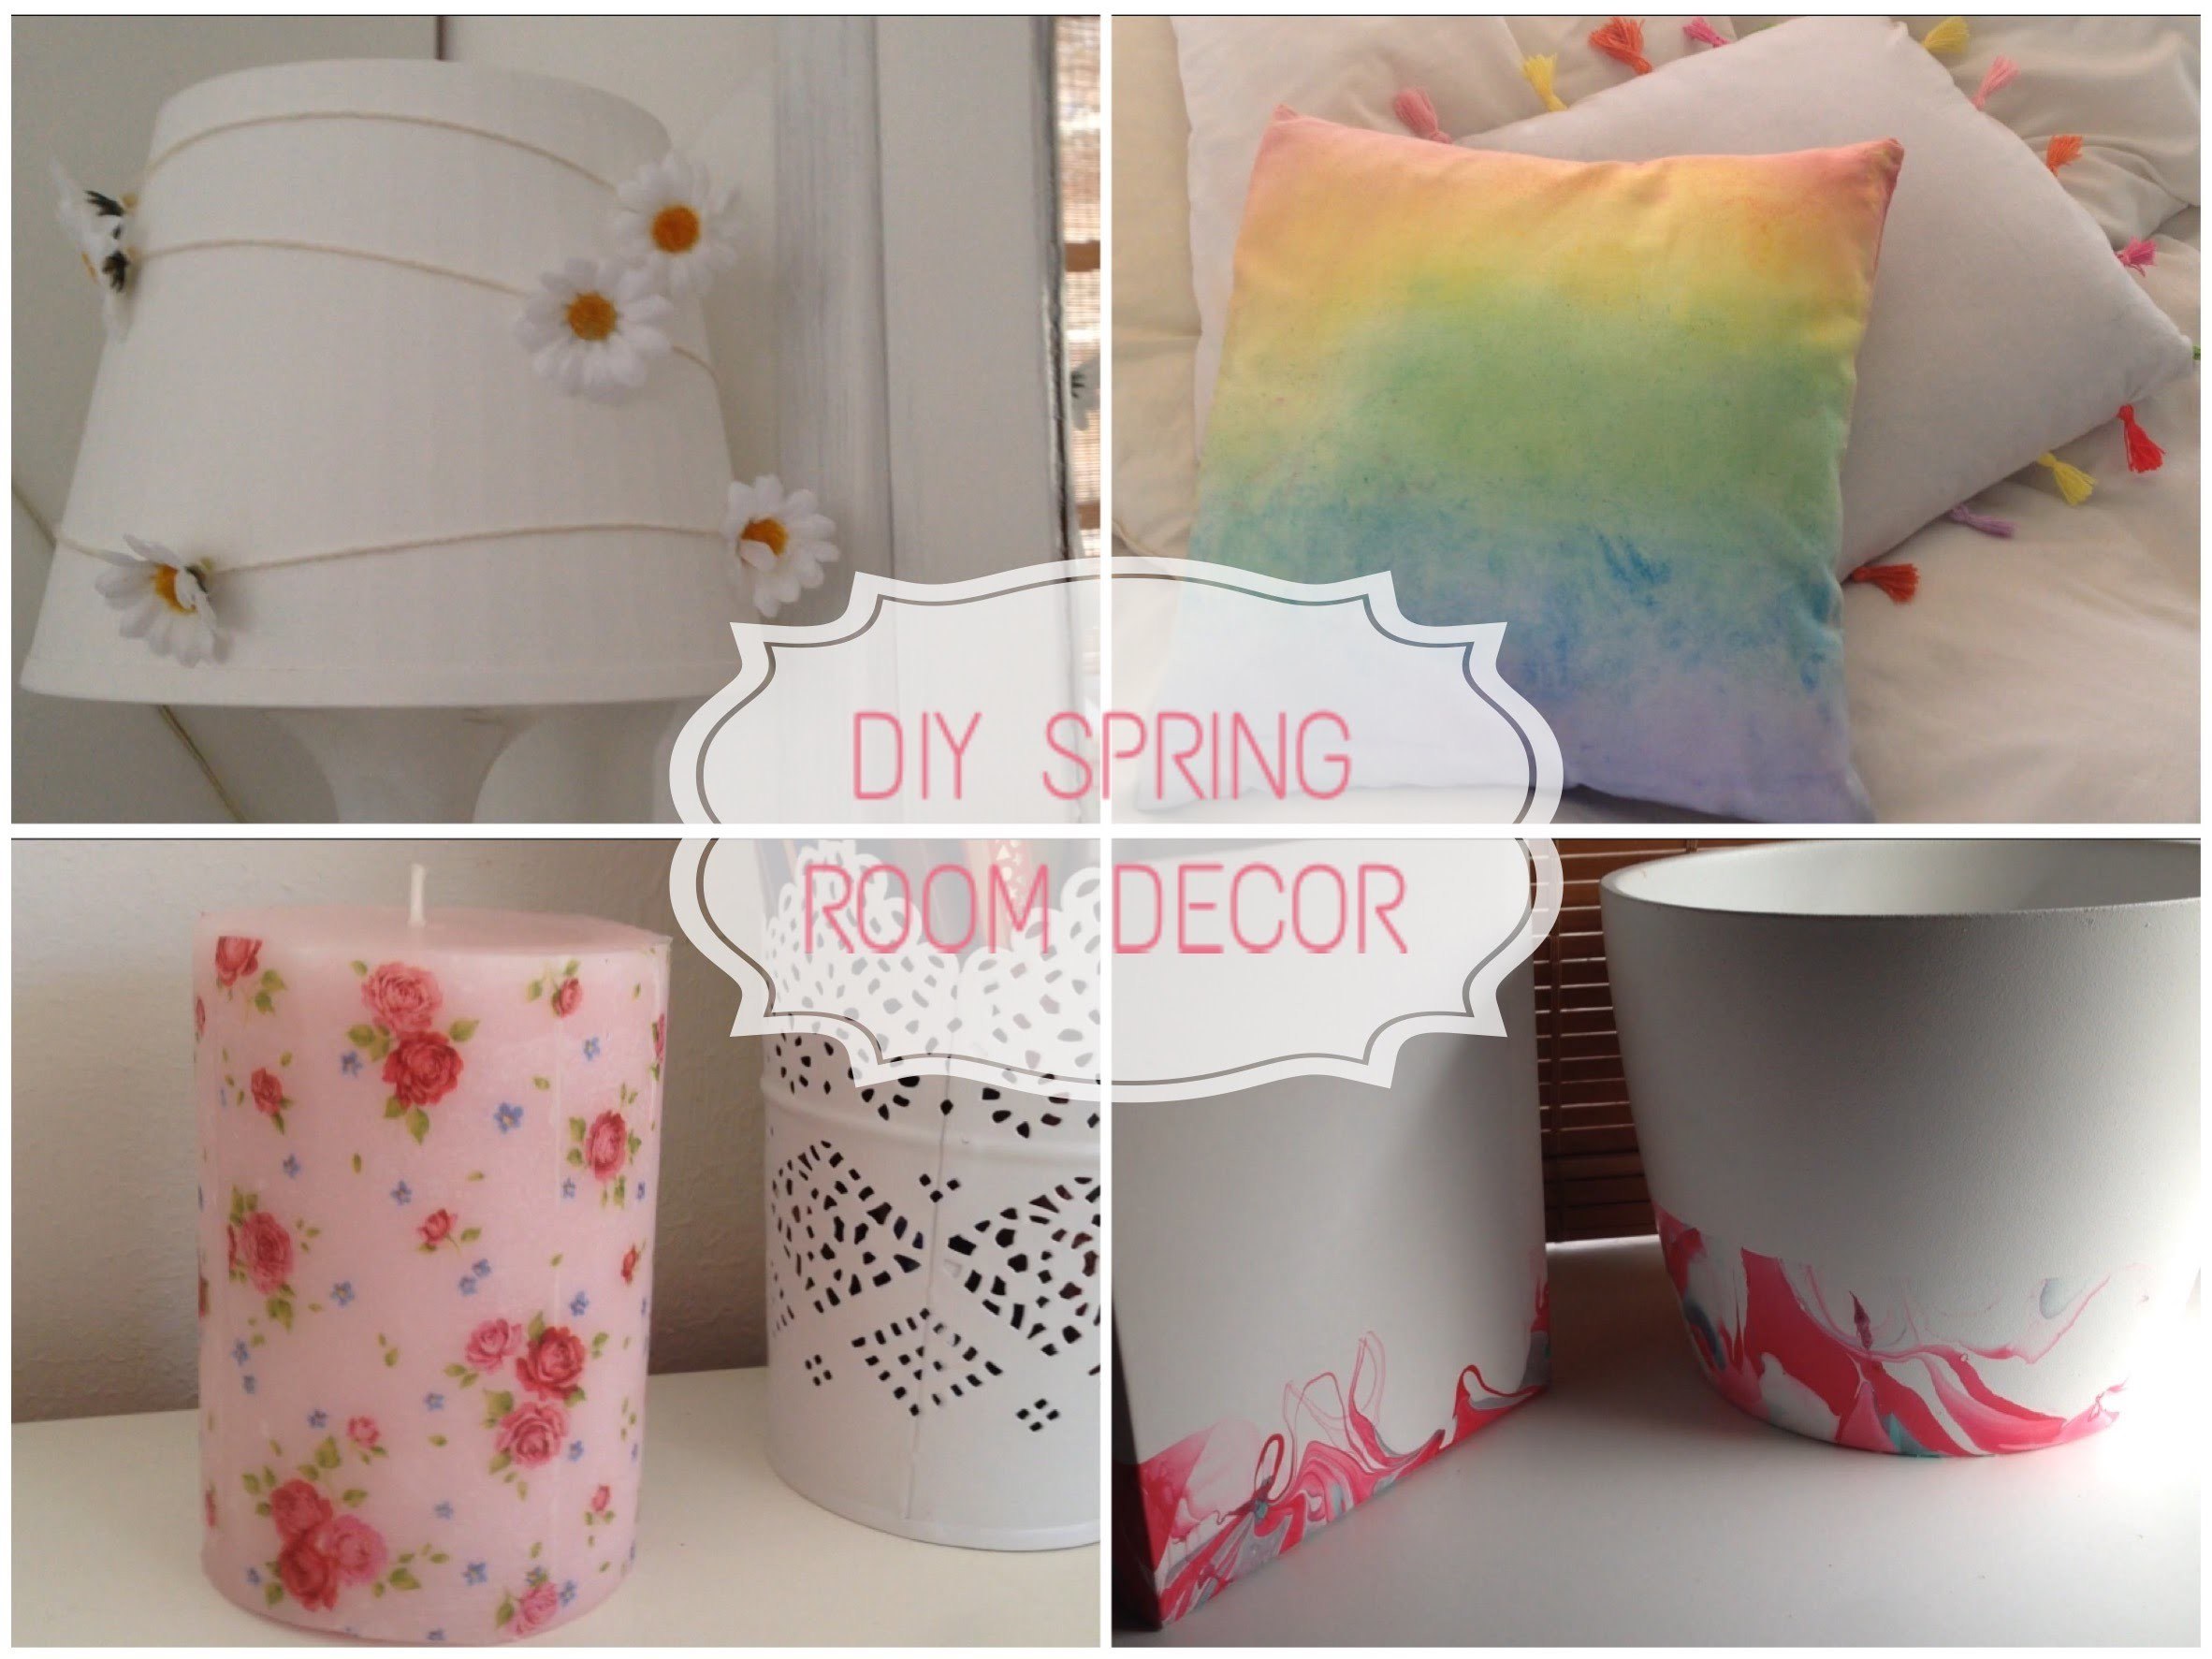 DIY: Decora tu cuarto. Spring Room Decor